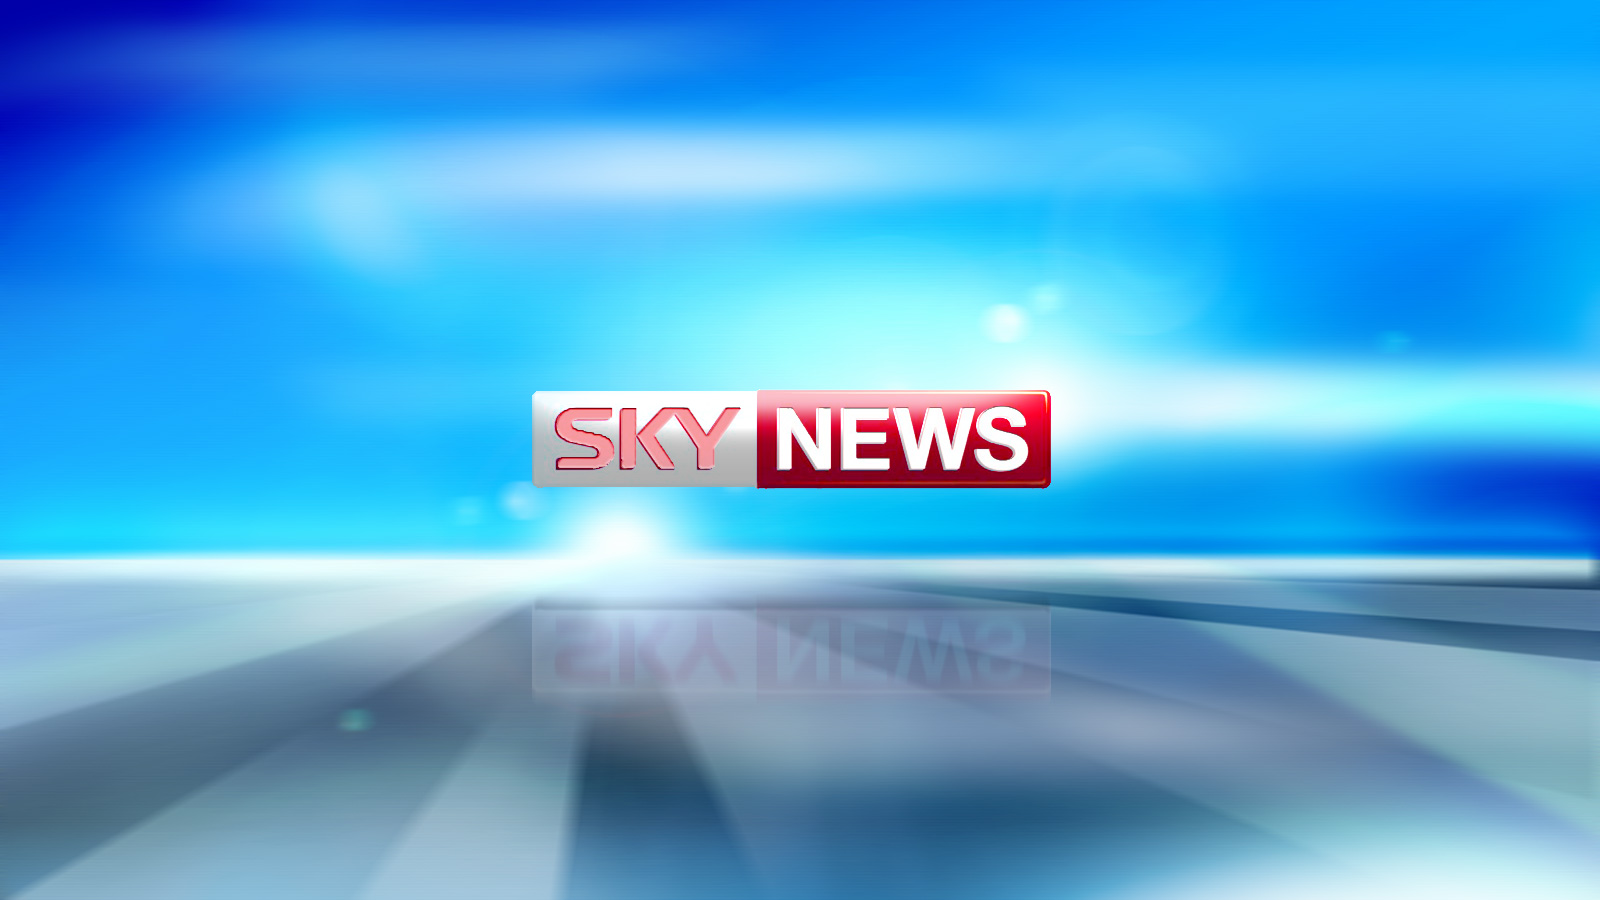 Sky News Ident Recreation - TV Forum